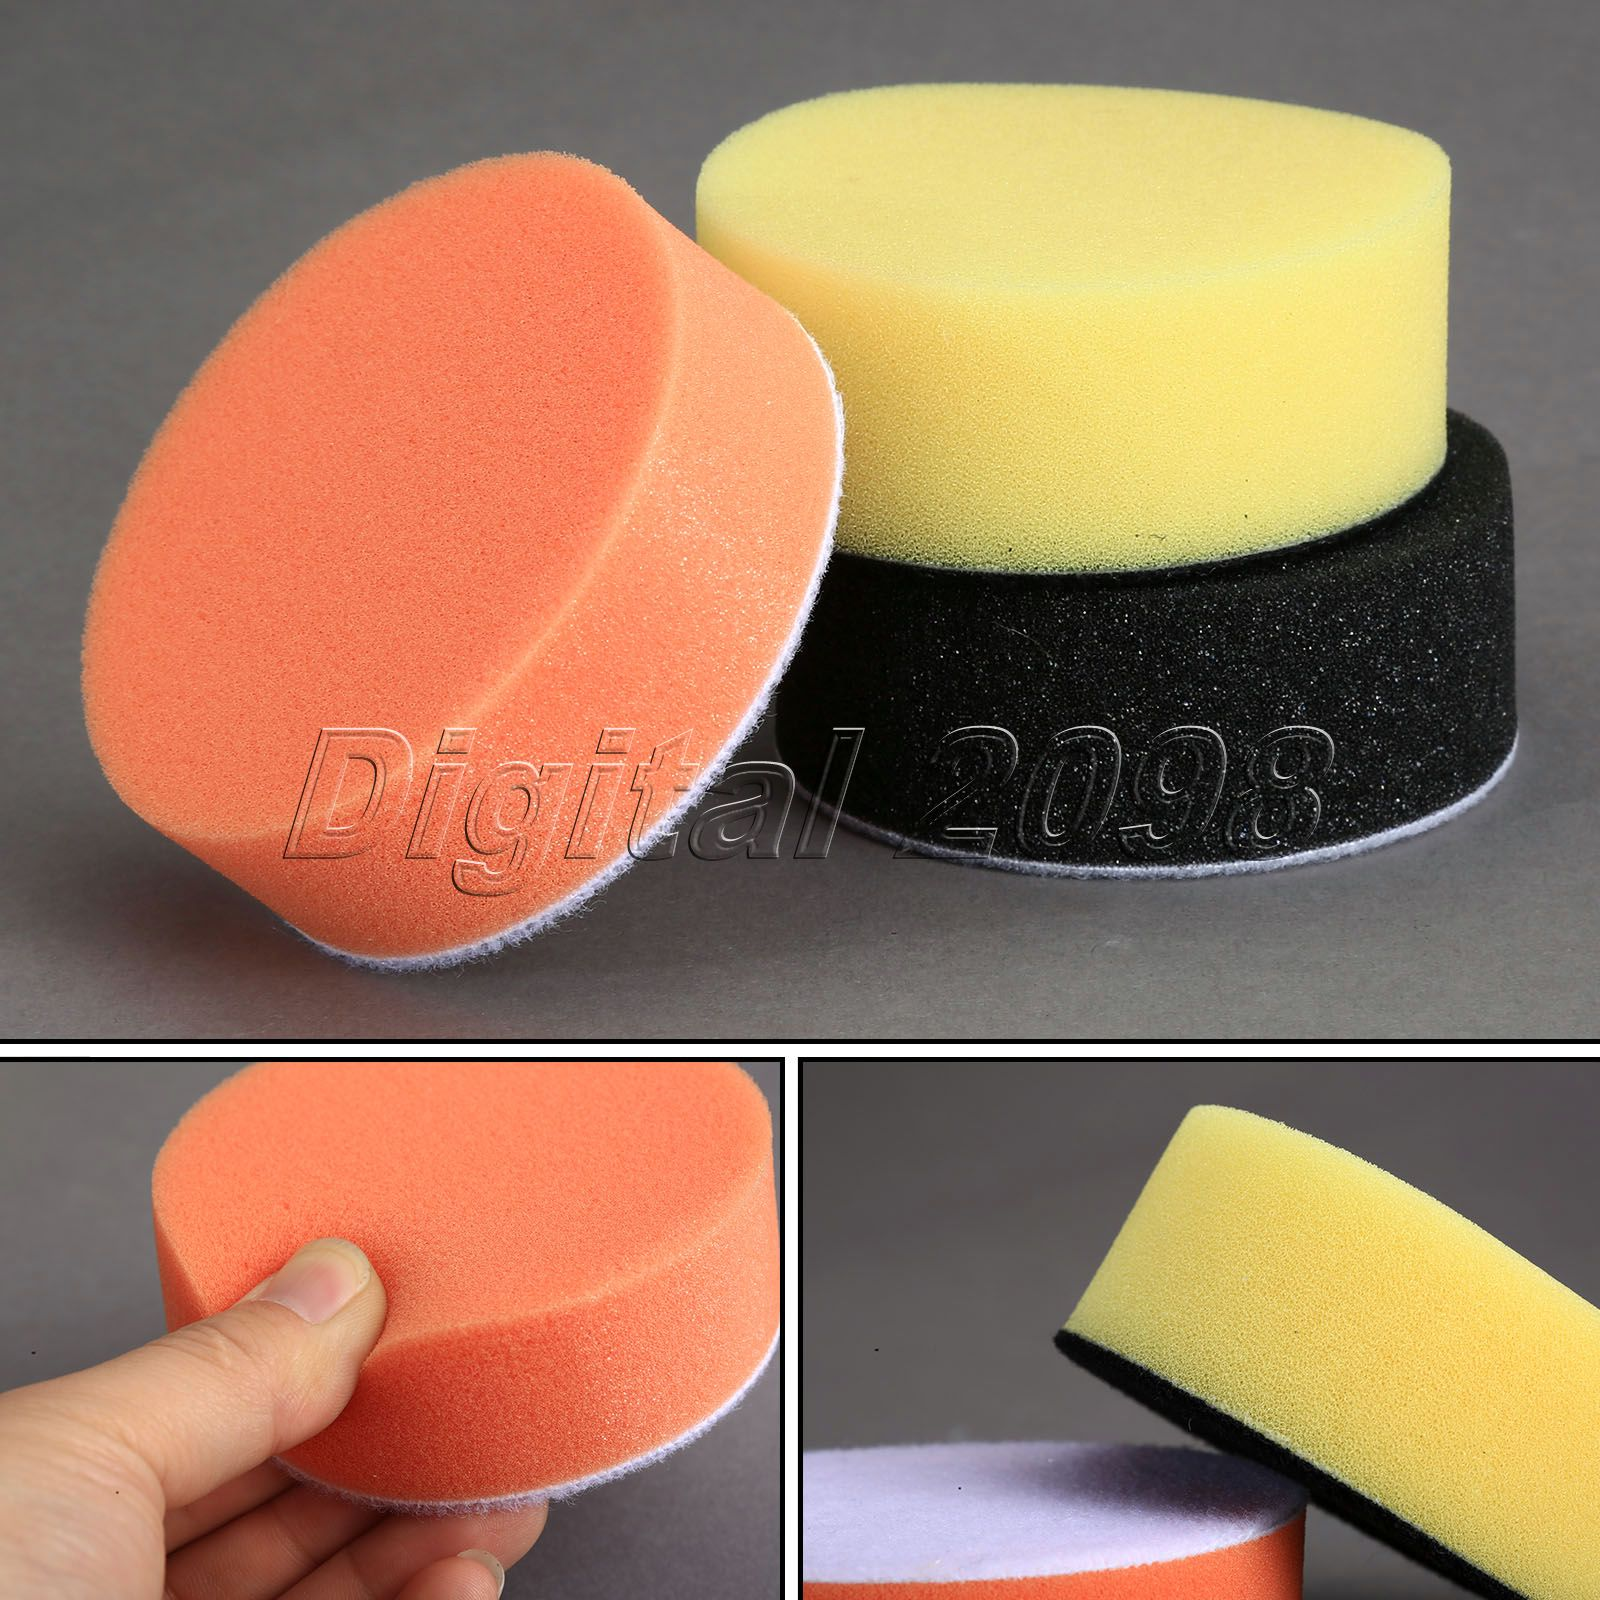 Yetaha 3Pcs 3 Inch 80mm Felt Soft Auto Car Waxing Sponge Foam Polishing Buffing Pads Kit Car Wash Tool Car Wax Cleaning Polisher